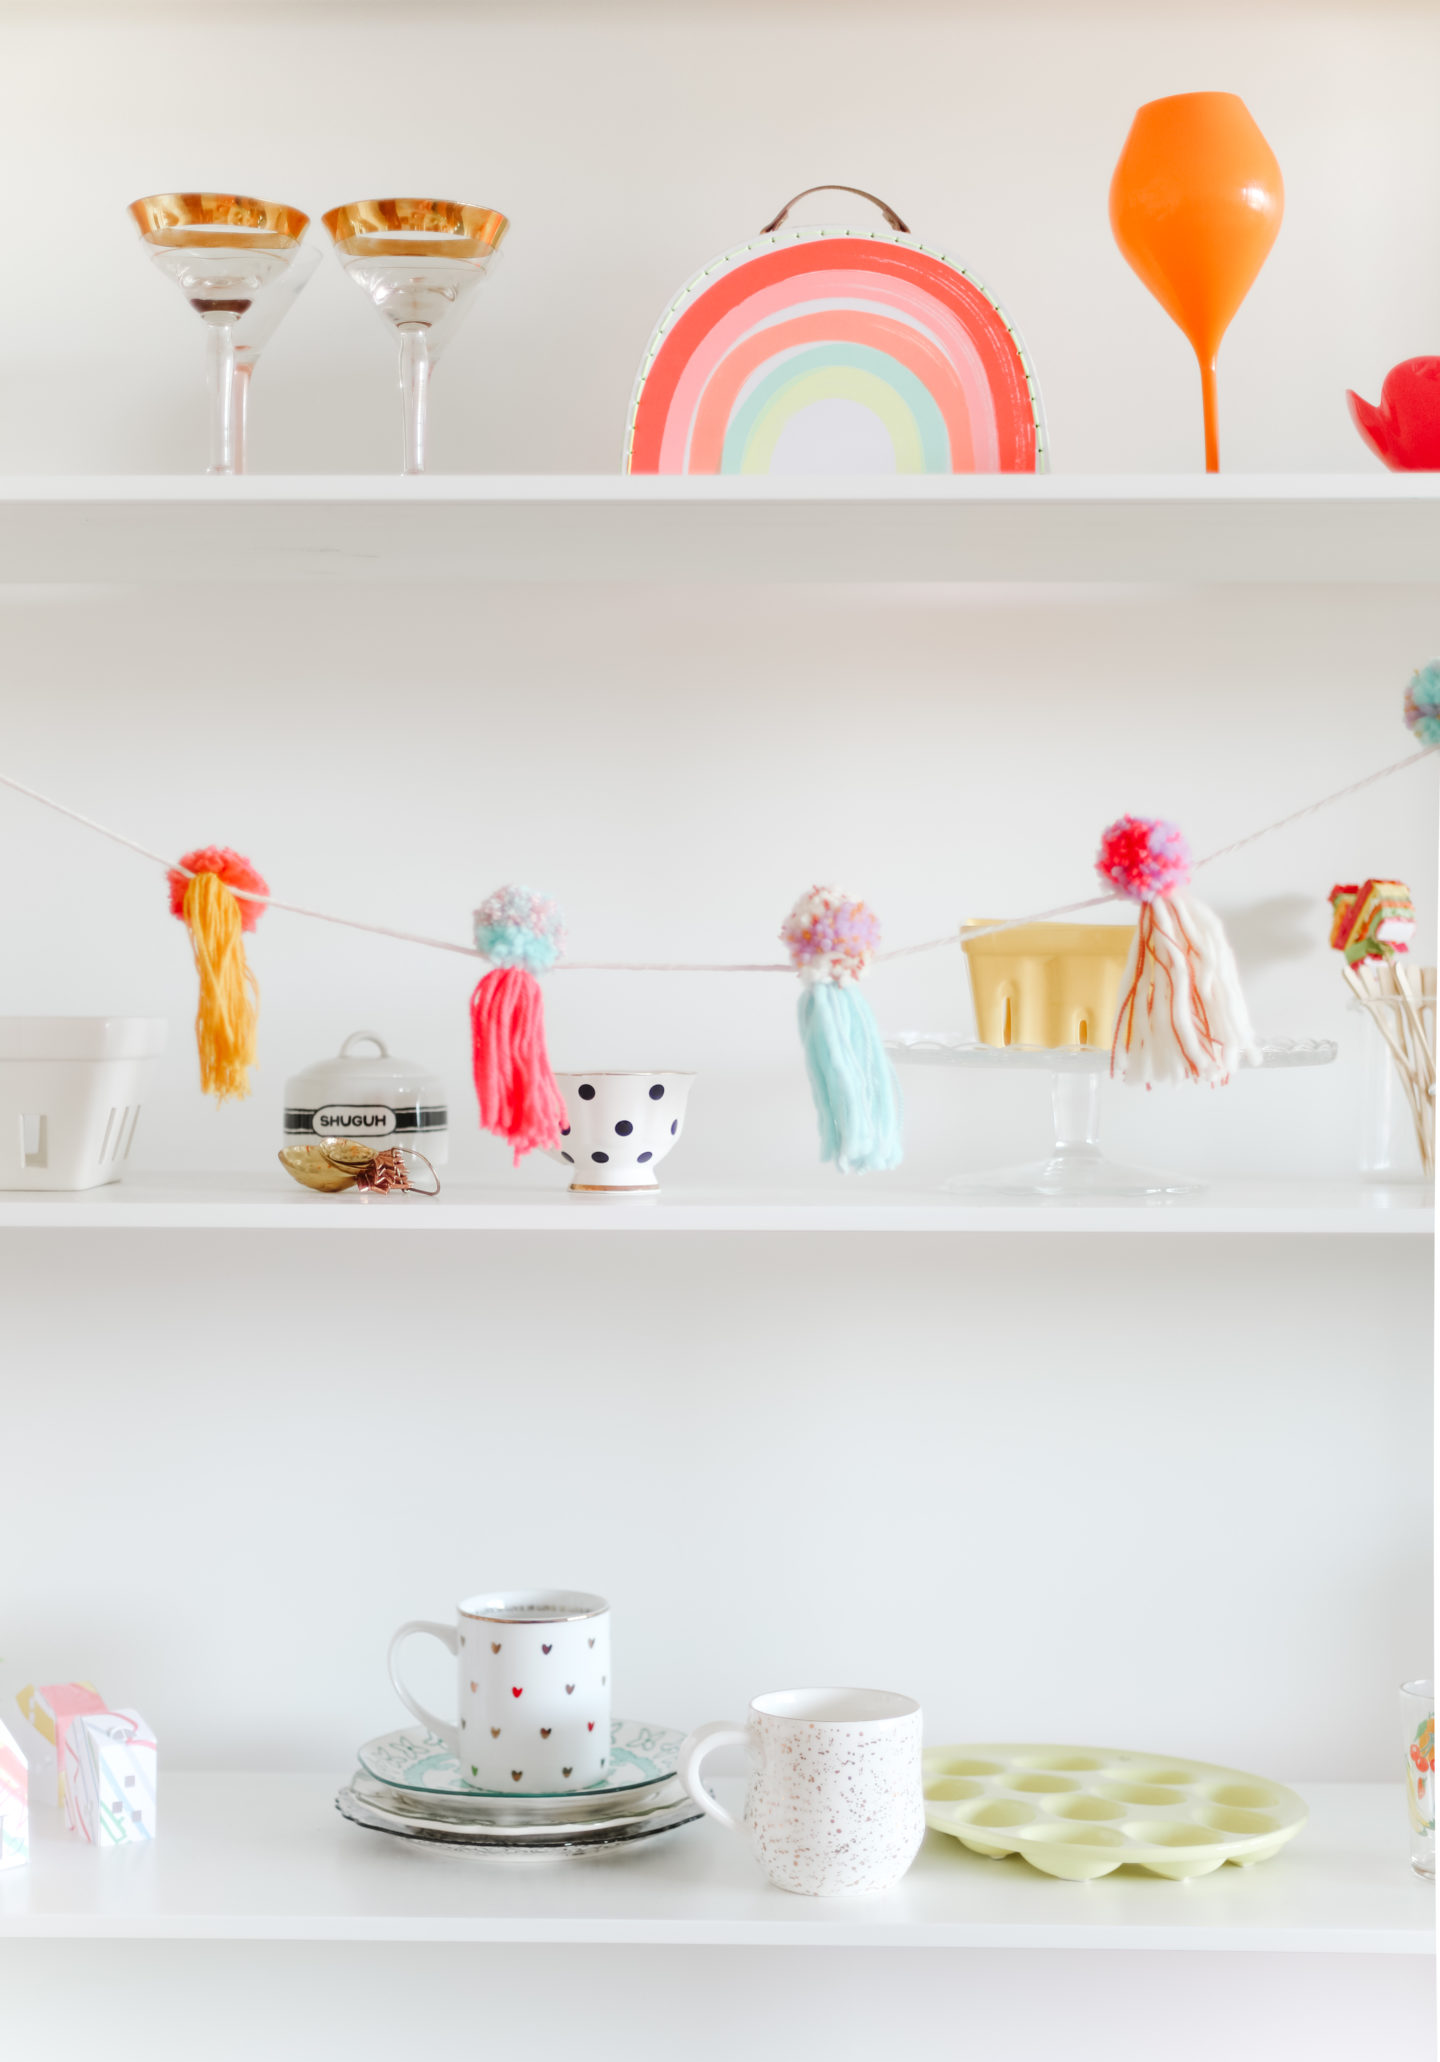 How to decorate a colourful shelf